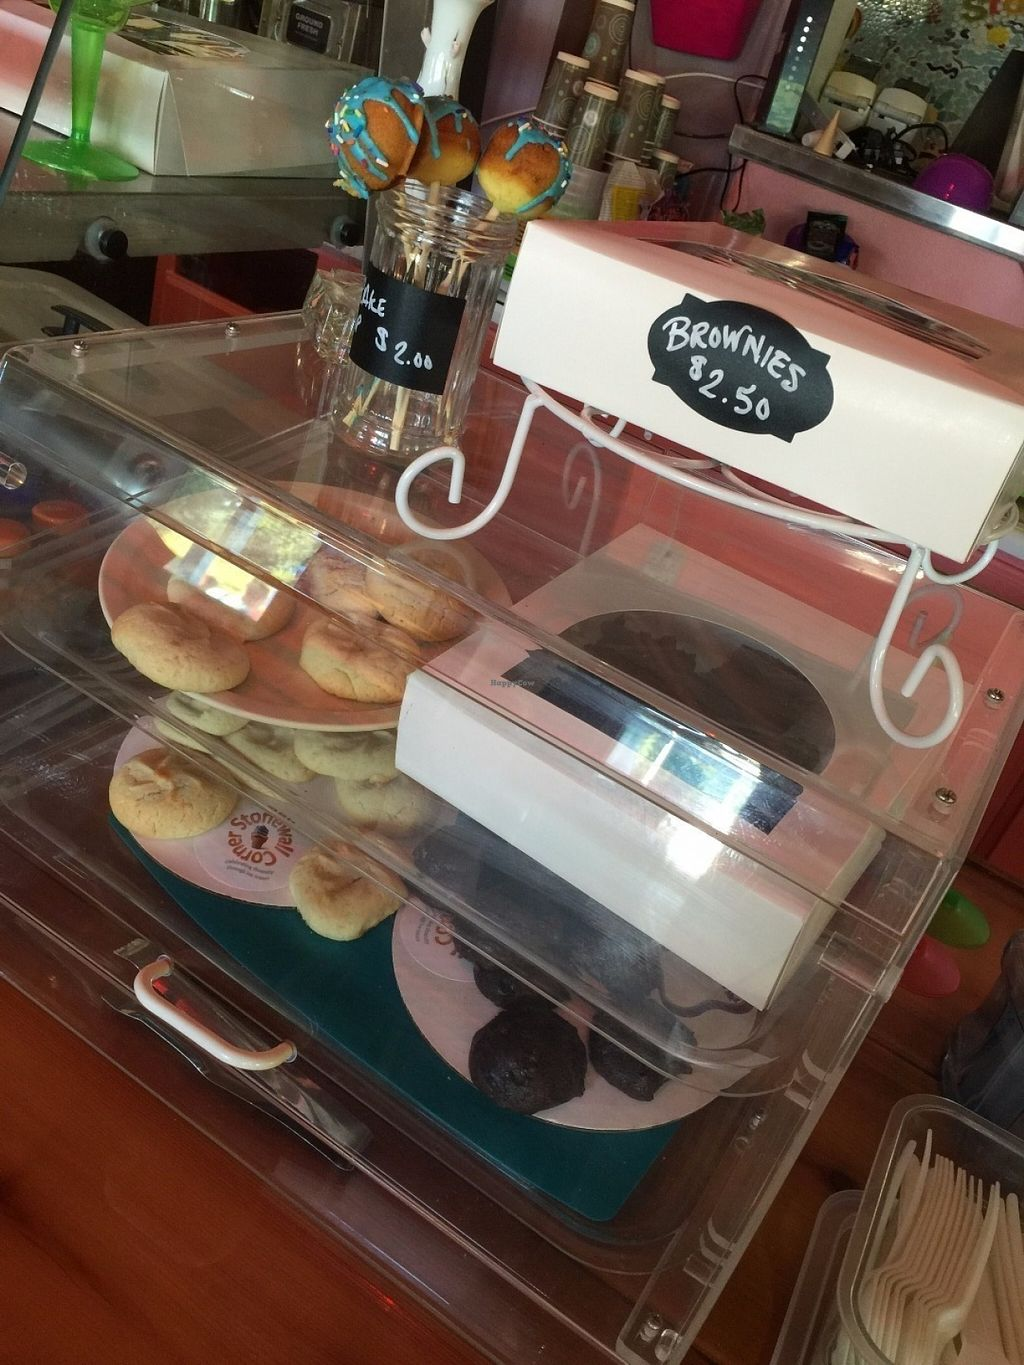 """Photo of CLOSED: Stonewall Corner  by <a href=""""/members/profile/BeccaBochenek"""">BeccaBochenek</a> <br/>Homemade vegan baked goods.  <br/> July 19, 2016  - <a href='/contact/abuse/image/76104/161004'>Report</a>"""